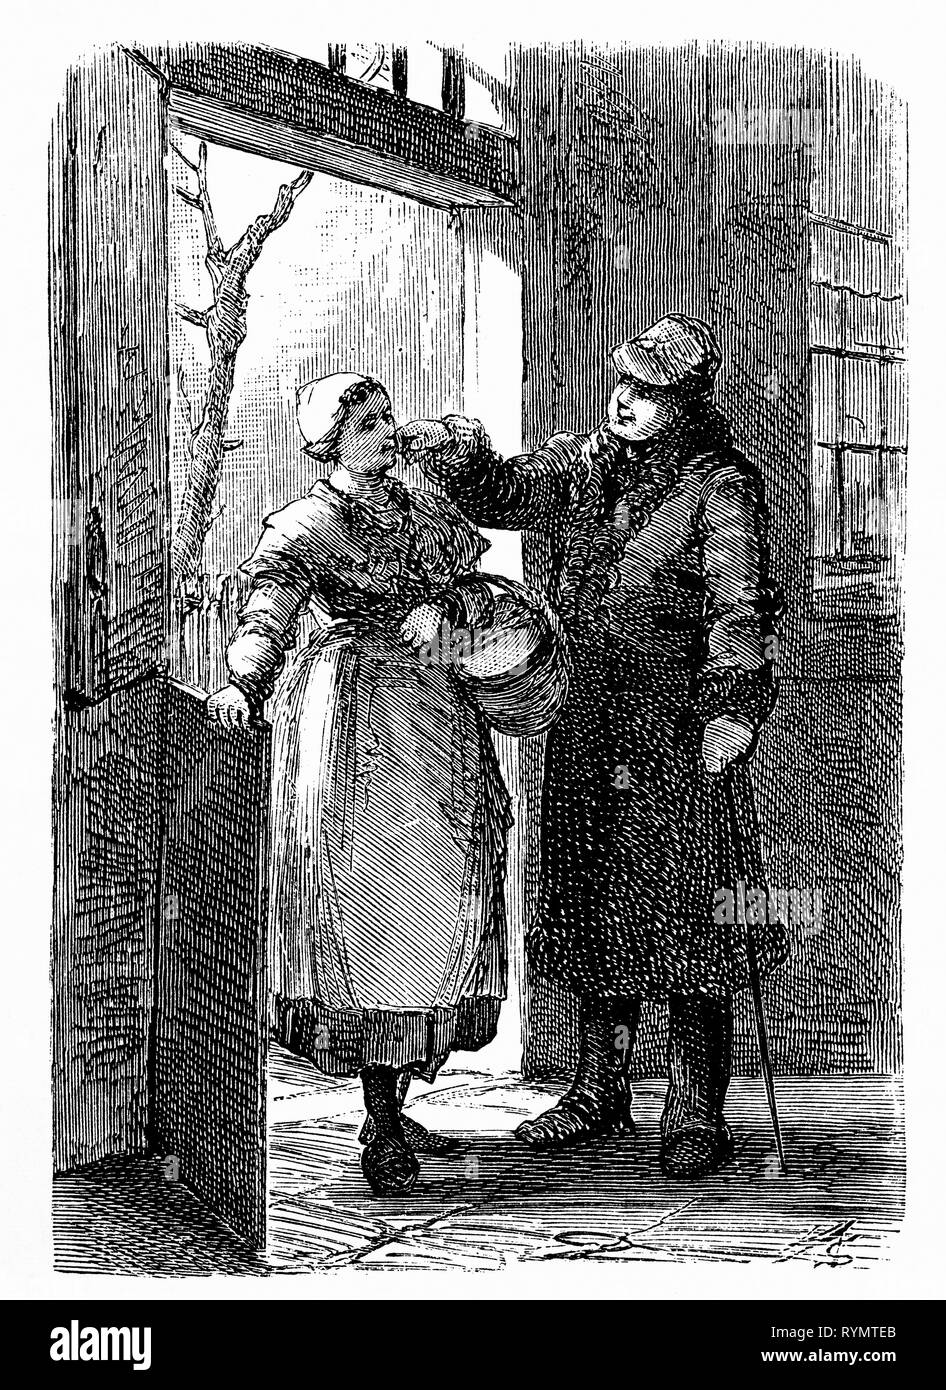 A farm owner visits his tenant famer, and strokes the farmer's daughter's cheek as he leaves. From the Camera Obscura, a 19th Century collection of Dutch humorous-realistic essays, stories and sketches in which Hildebrand, the author, takes an ironic look at the behavior of the 'well-to-do', finding  them bourgeois and without a good word for them. - Stock Image